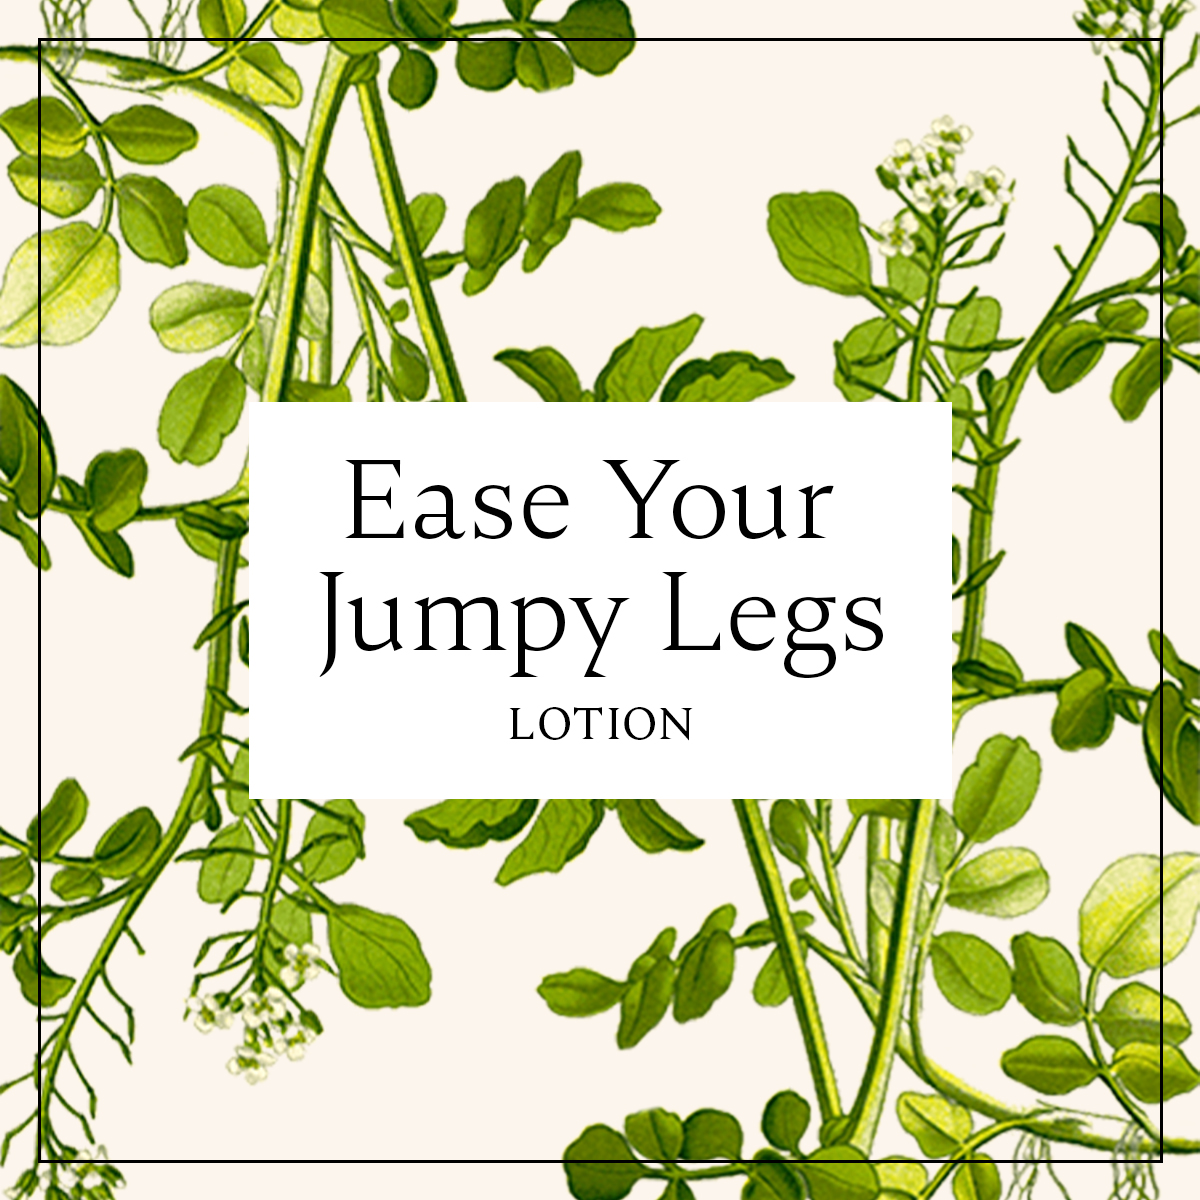 Essential Oils for Jumpy Legs: A Lotion Recipe